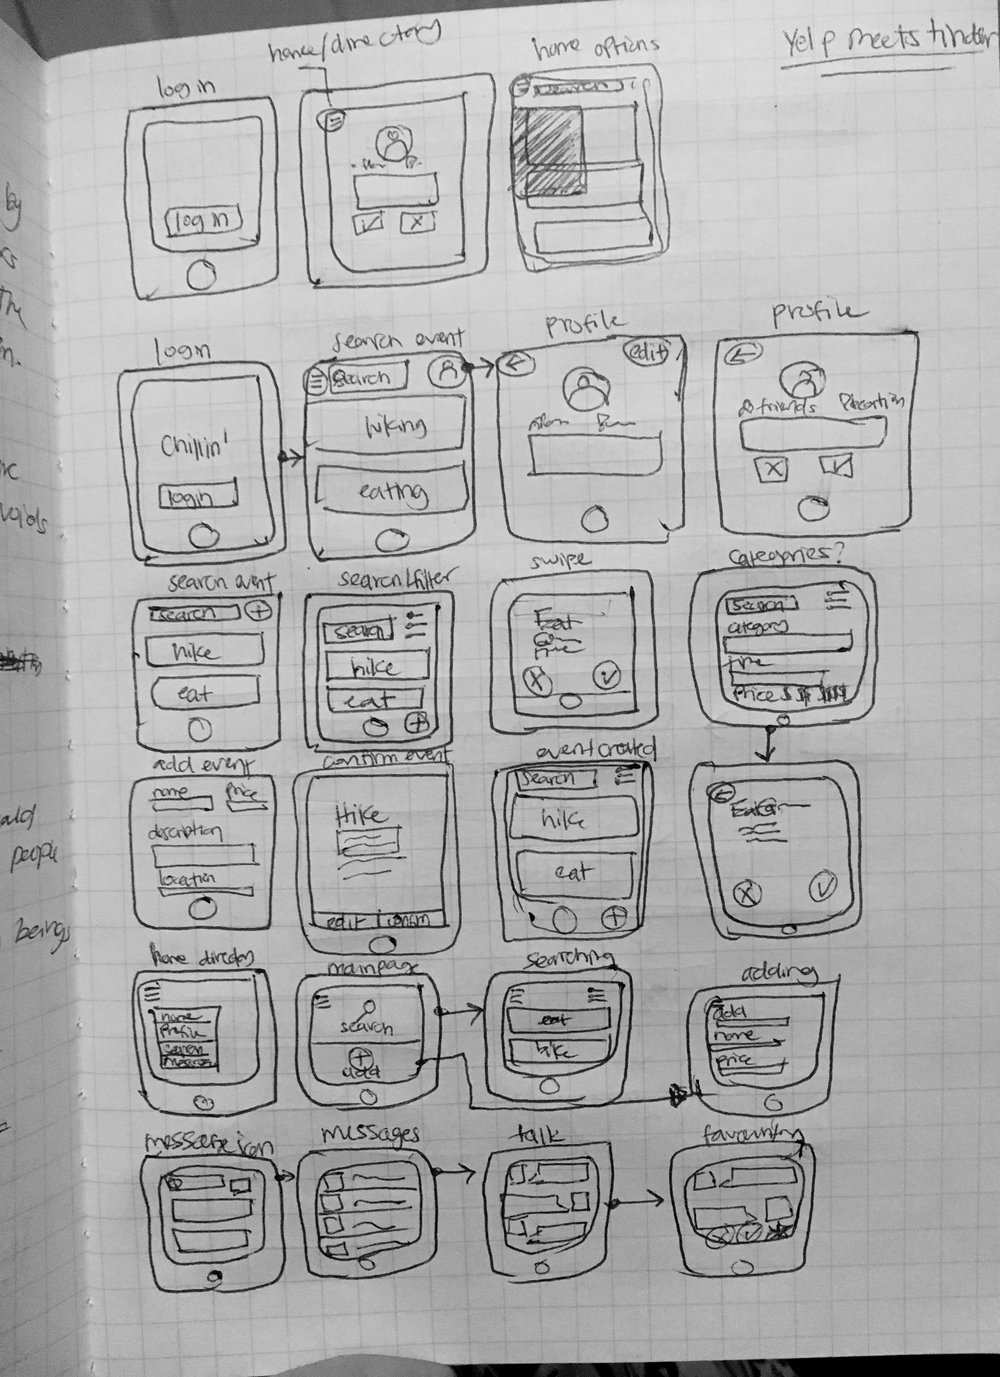 2. Low-fidelity wireframes for each screen interaction